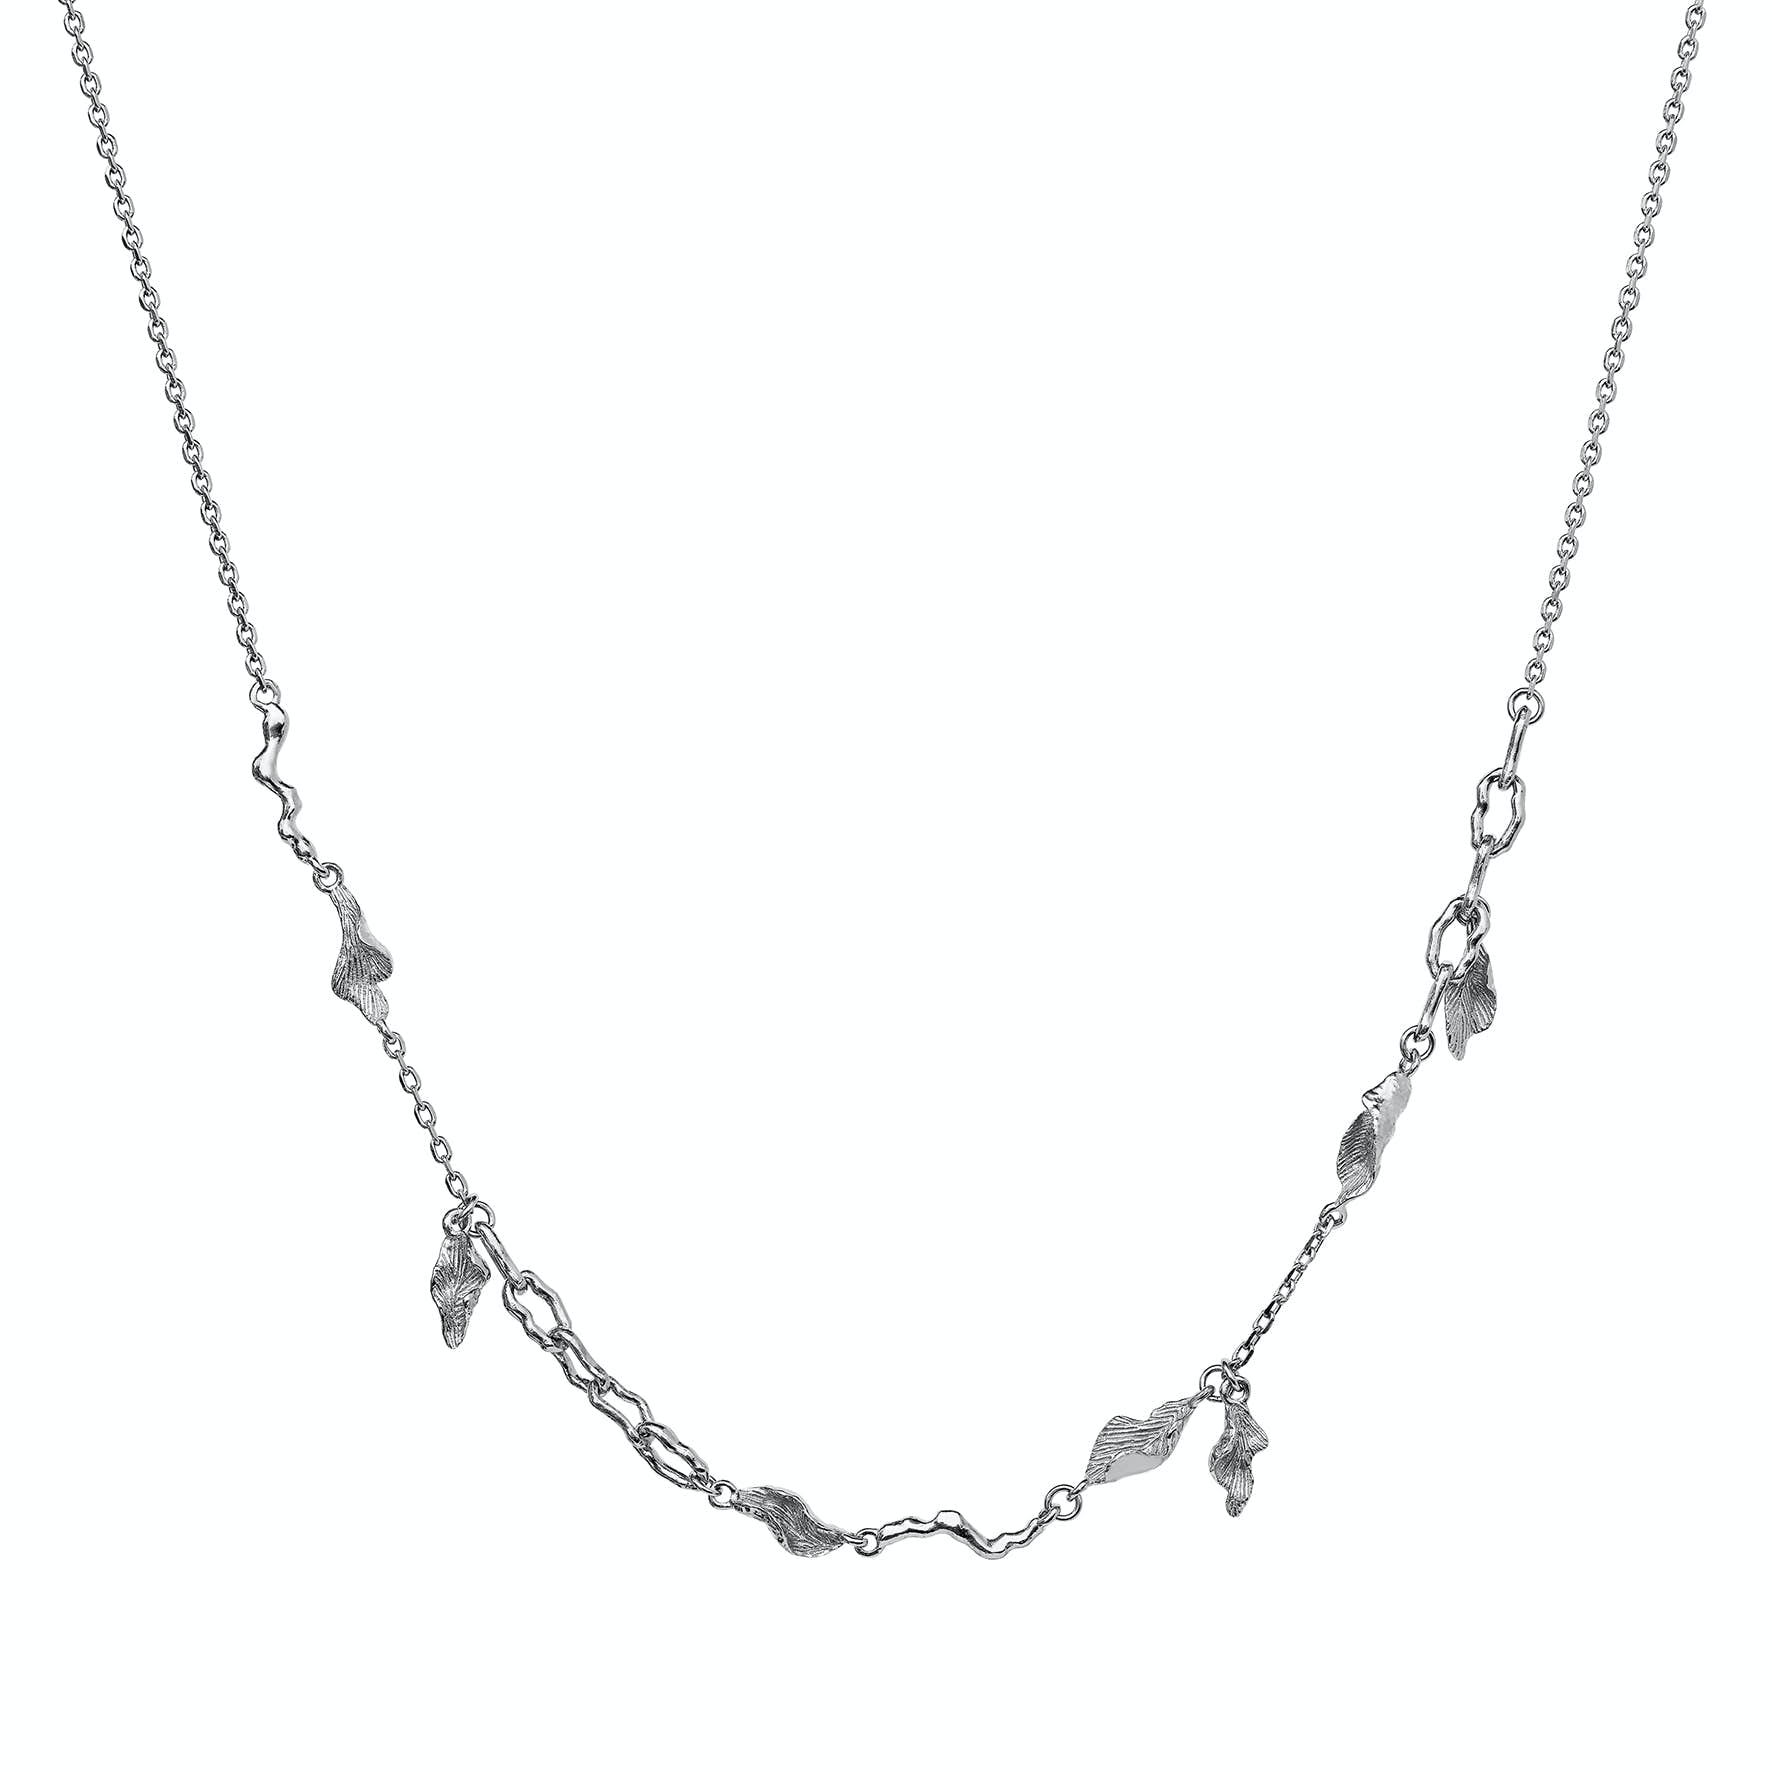 Lenani Necklace from Maanesten in Silver Sterling 925